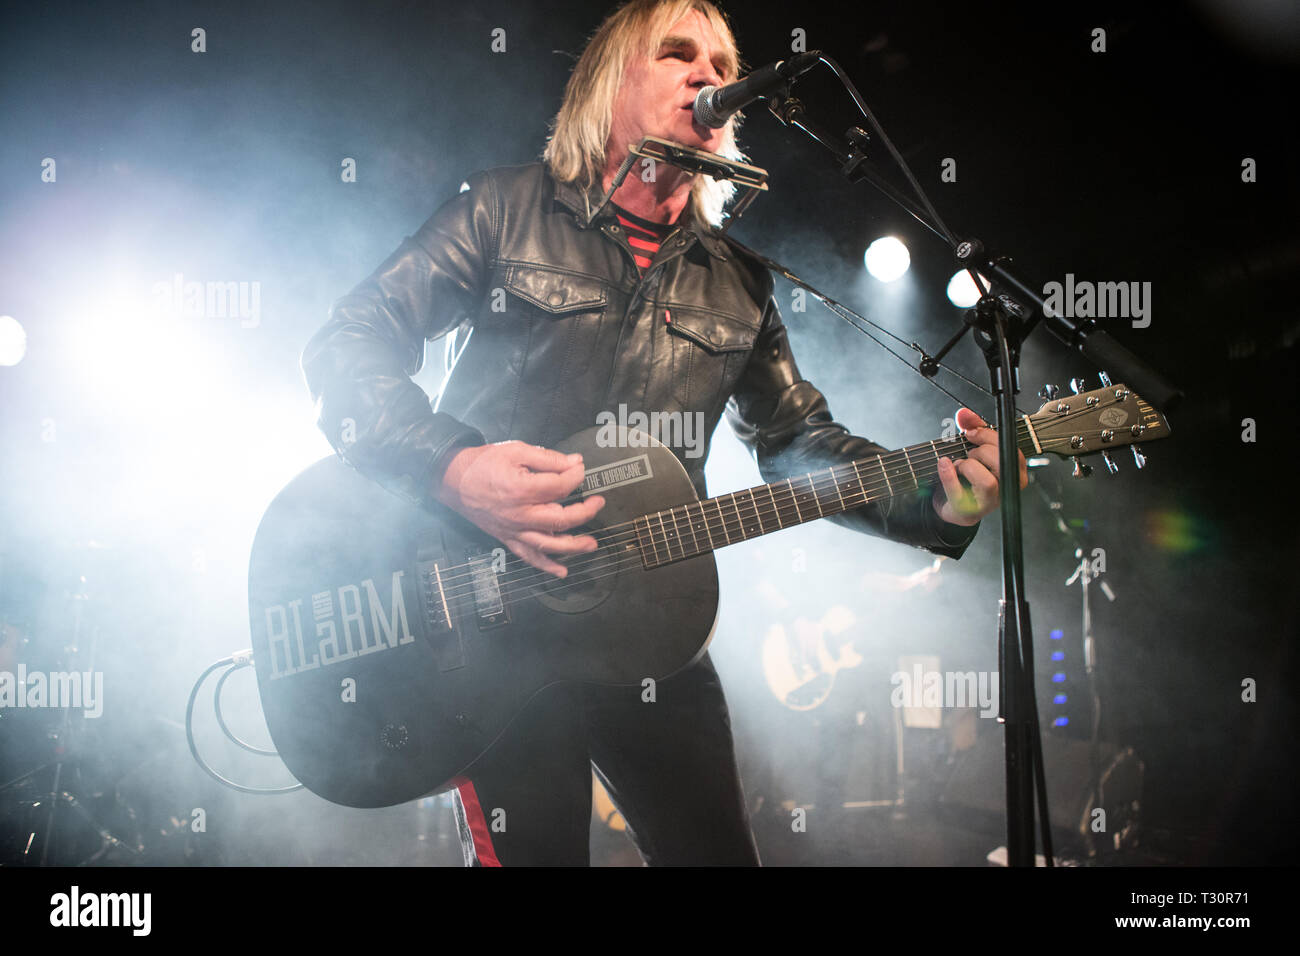 Norway, Oslo - April 4, 2019. The Welsh rock band The Alarm performs live concert at John Dee in Oslo. Here vocalist and guitarist Mike Peters is seen live on stage. (Photo credit: Gonzales Photo - Per-Otto Oppi). Credit: Gonzales Photo/Alamy Live News Stock Photo